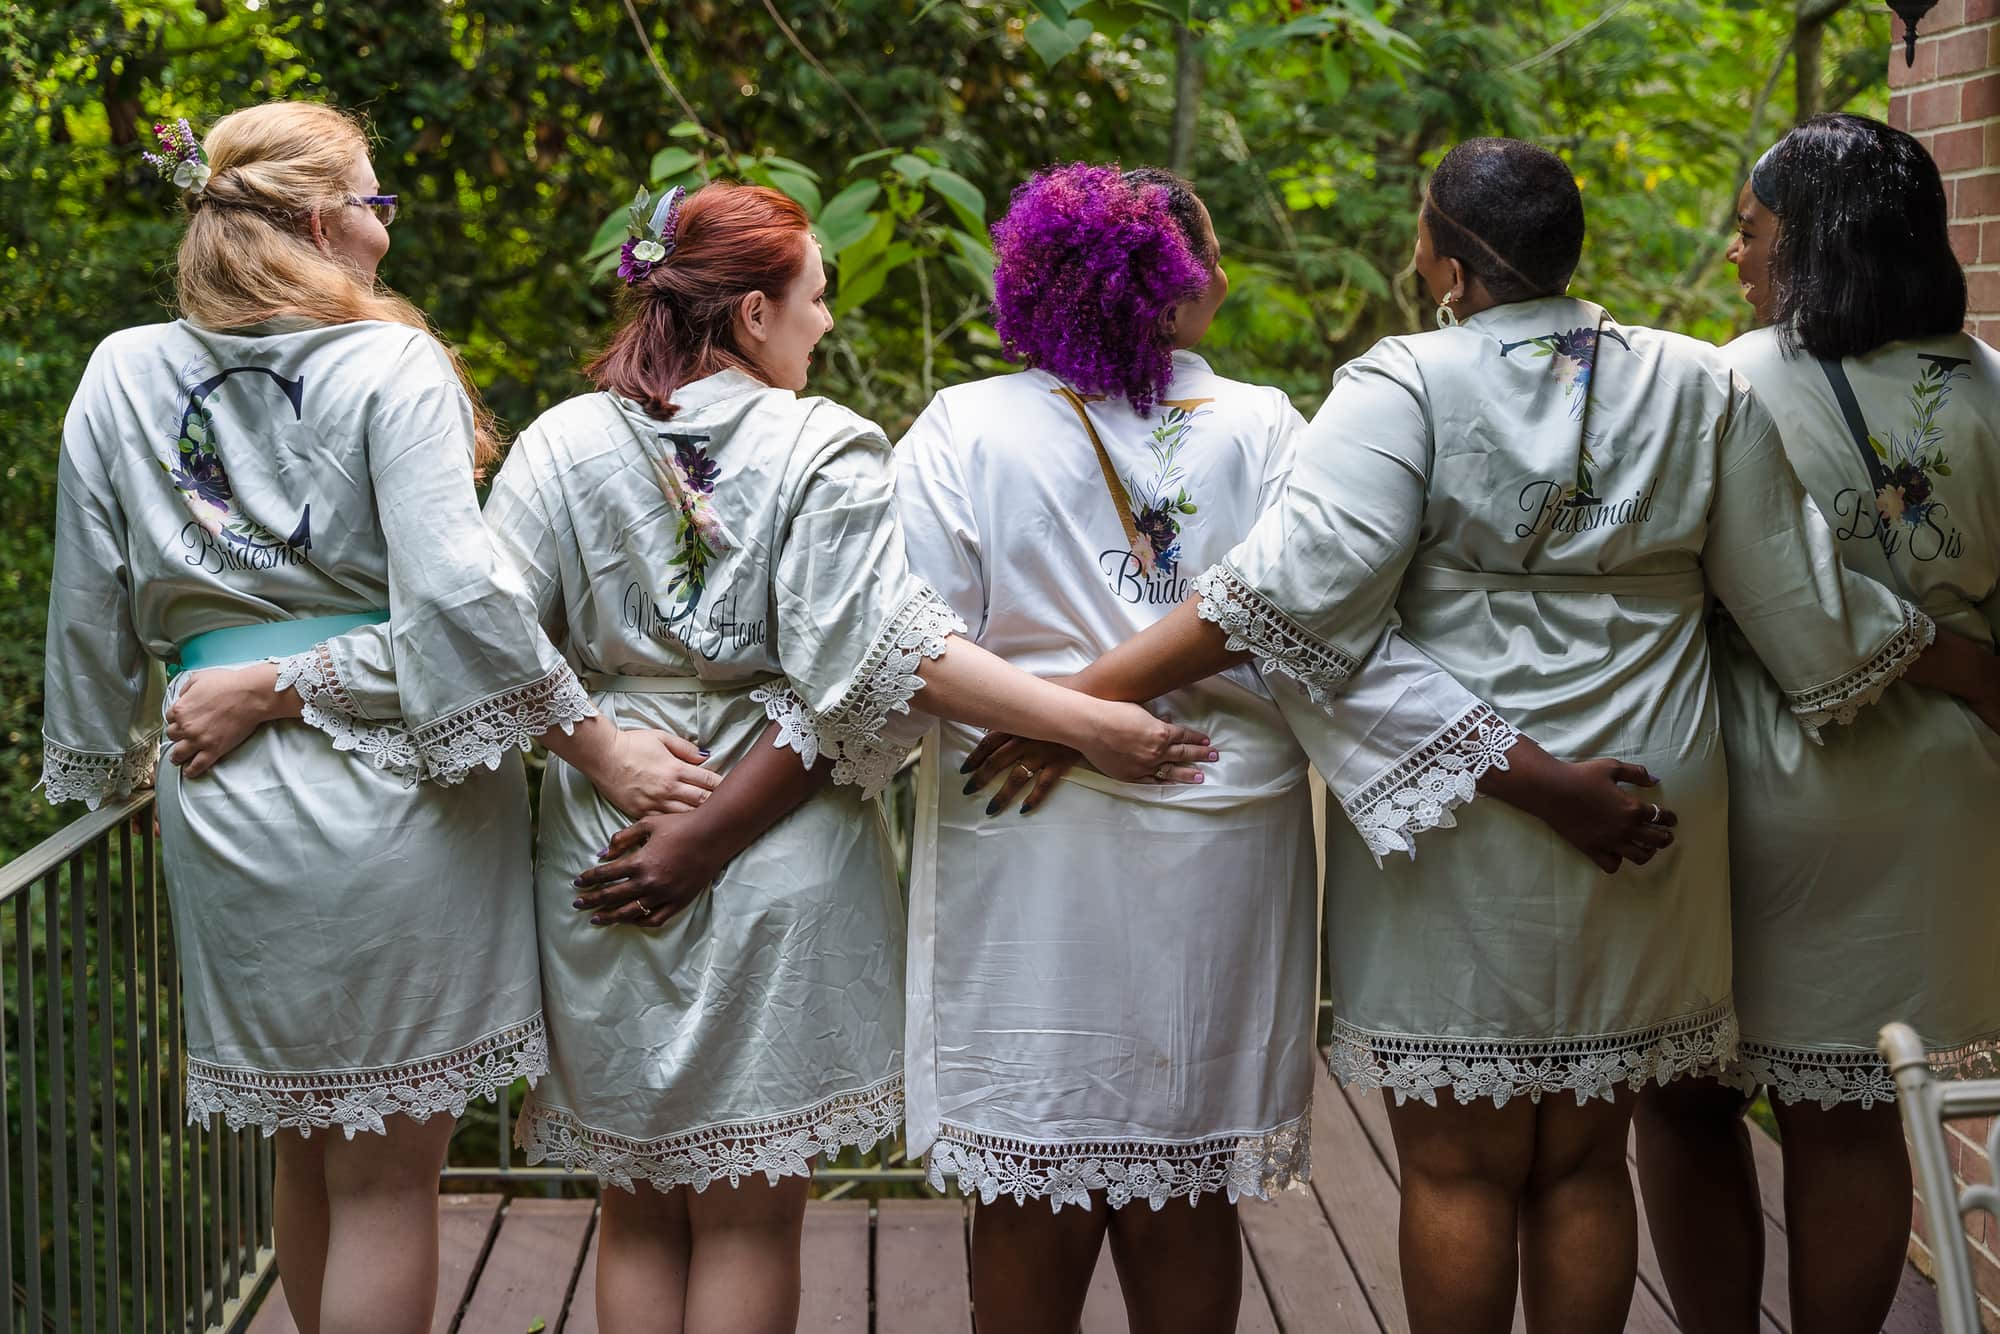 The Gatehouse Baton Rouge Wedding bridal party in robes